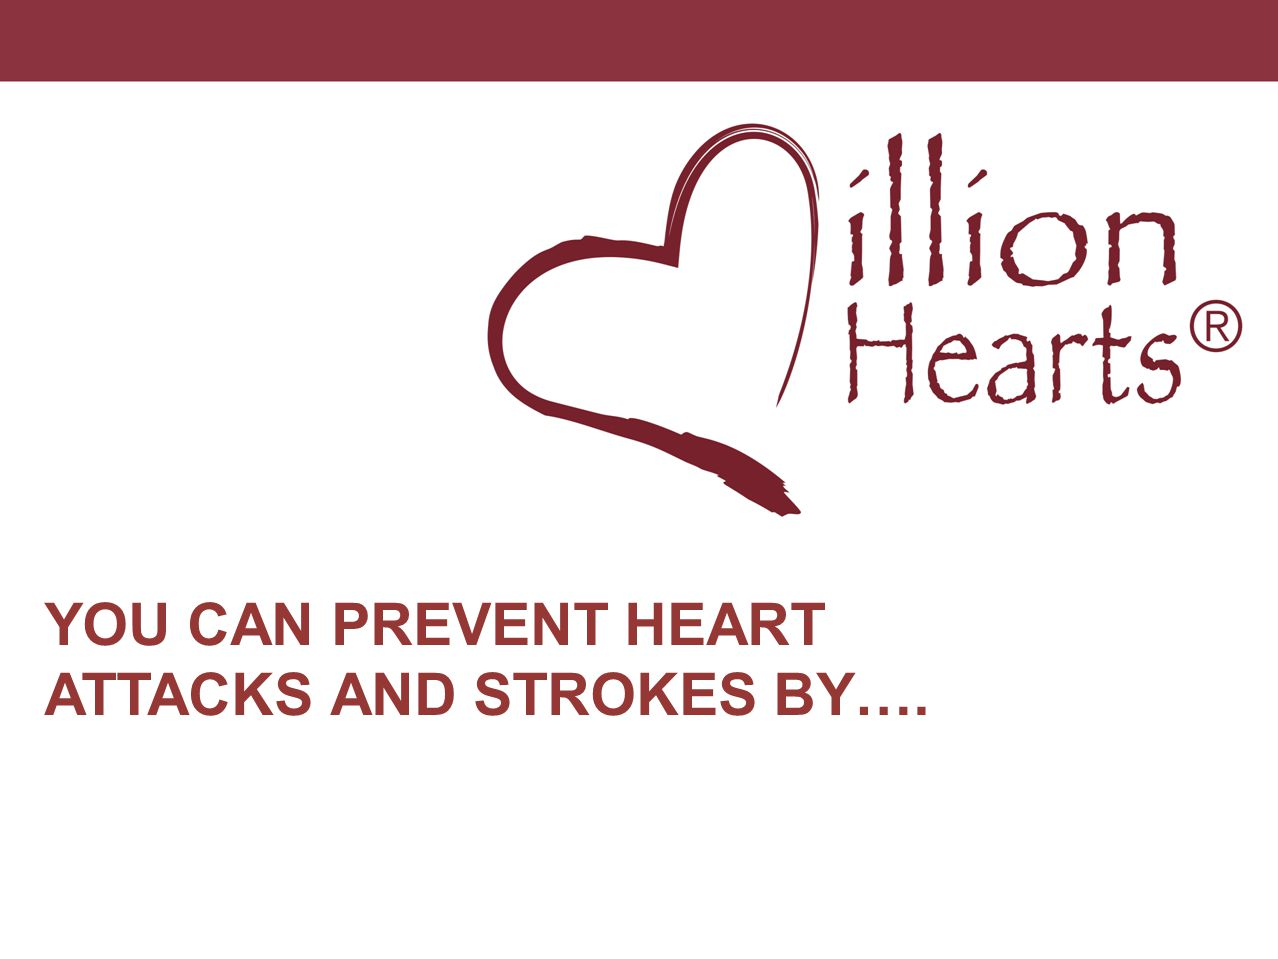 YOU CAN PREVENT HEART ATTACKS AND STROKES BY….